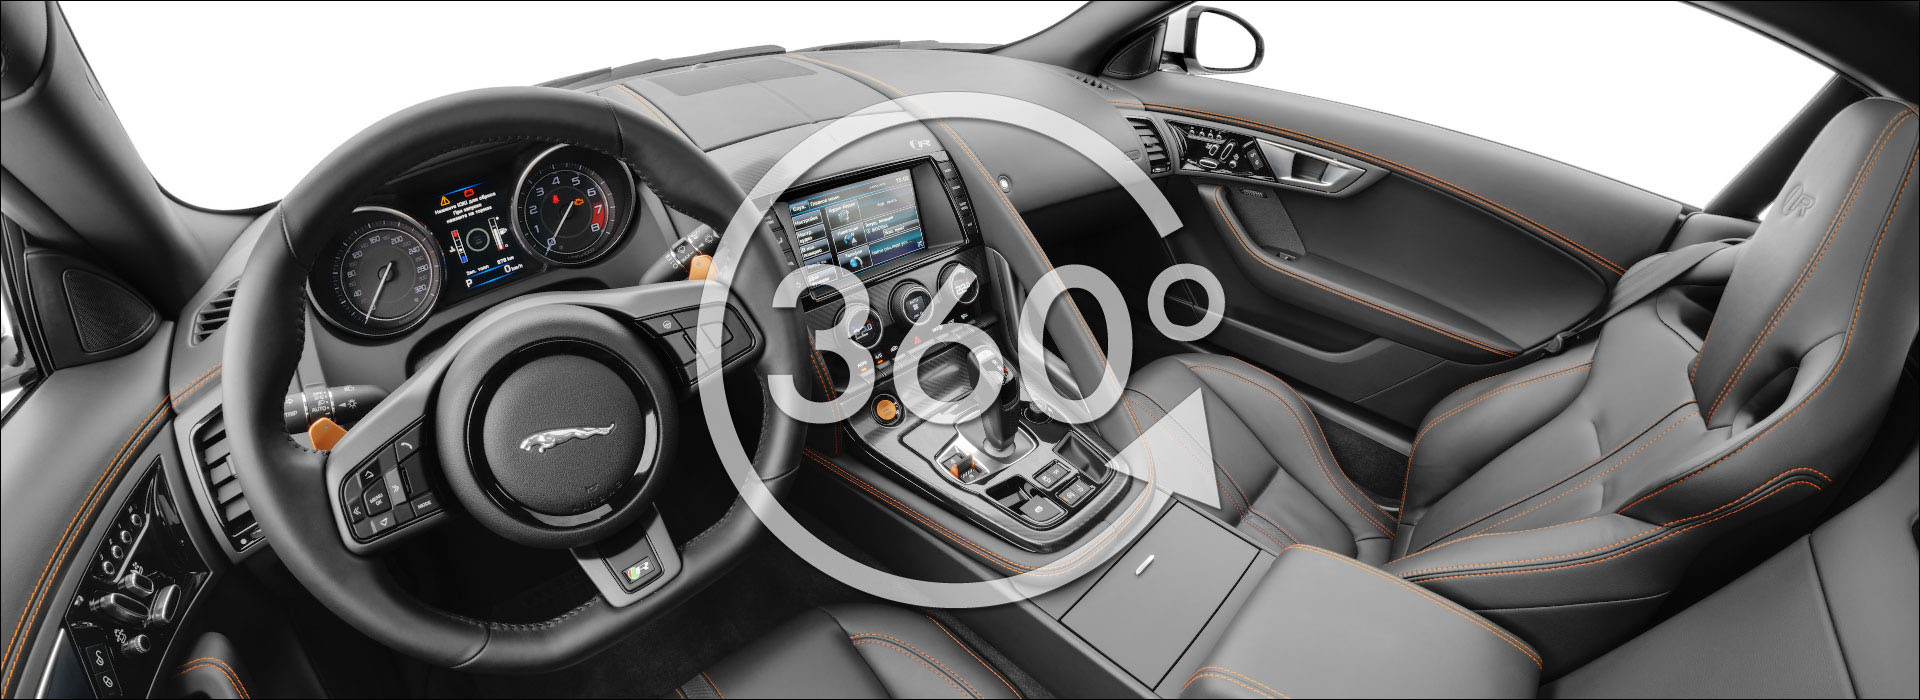 Jaguar F-Type virtual tour